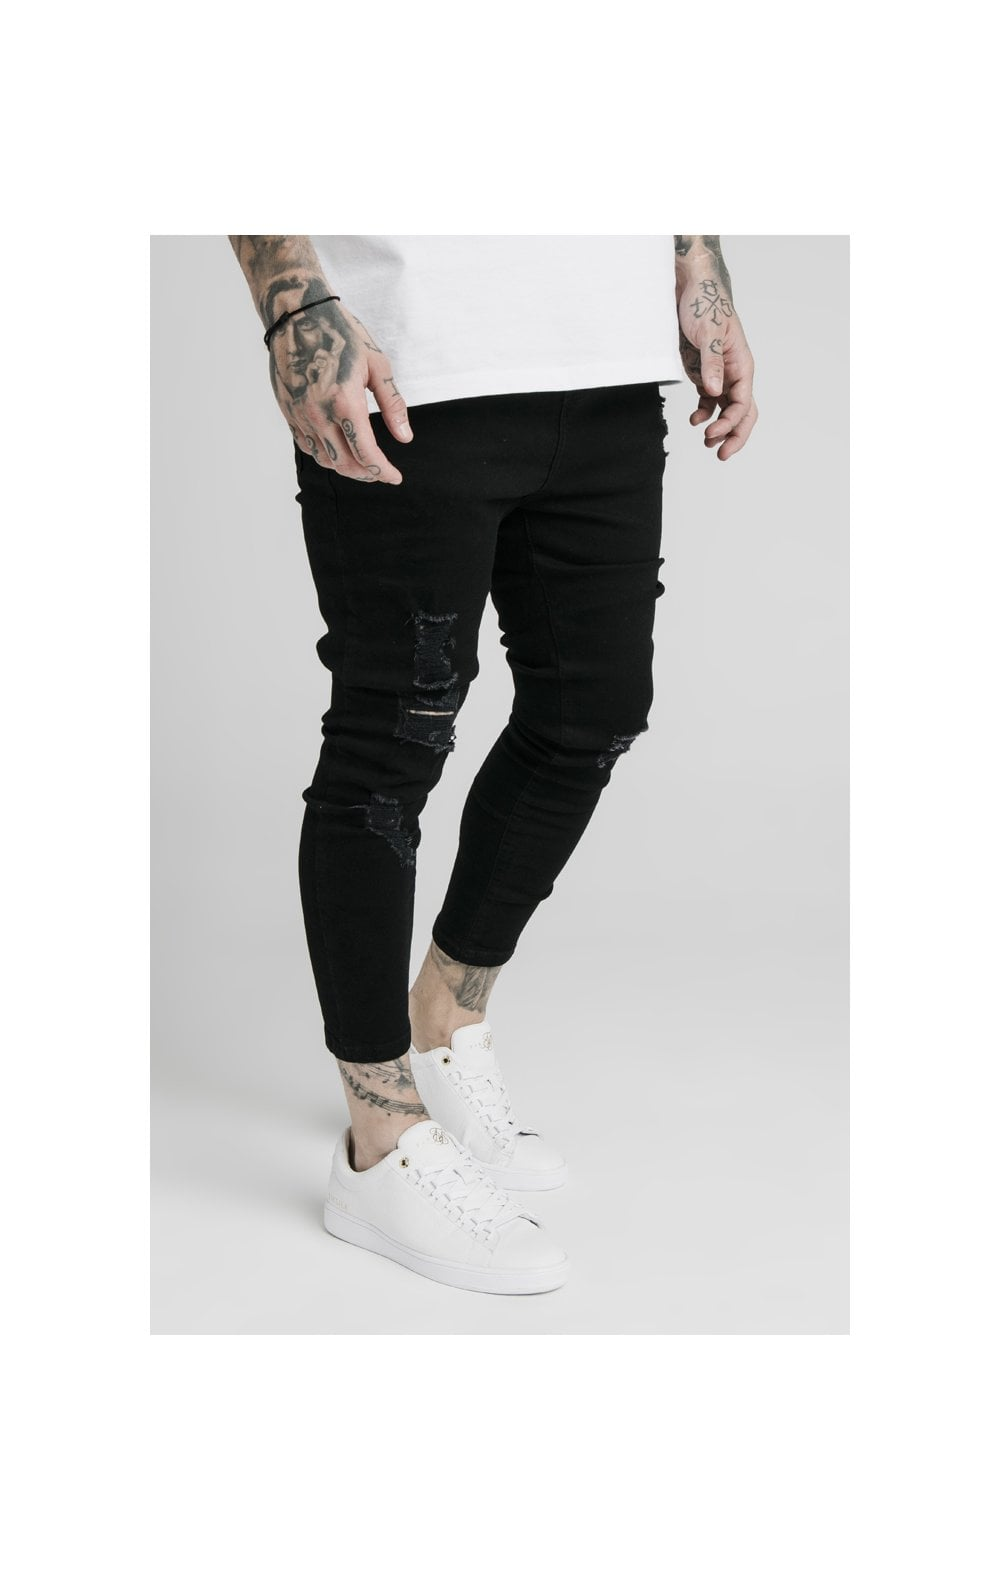 SikSilk Ultra Drop Crotch Denims - Black (2)